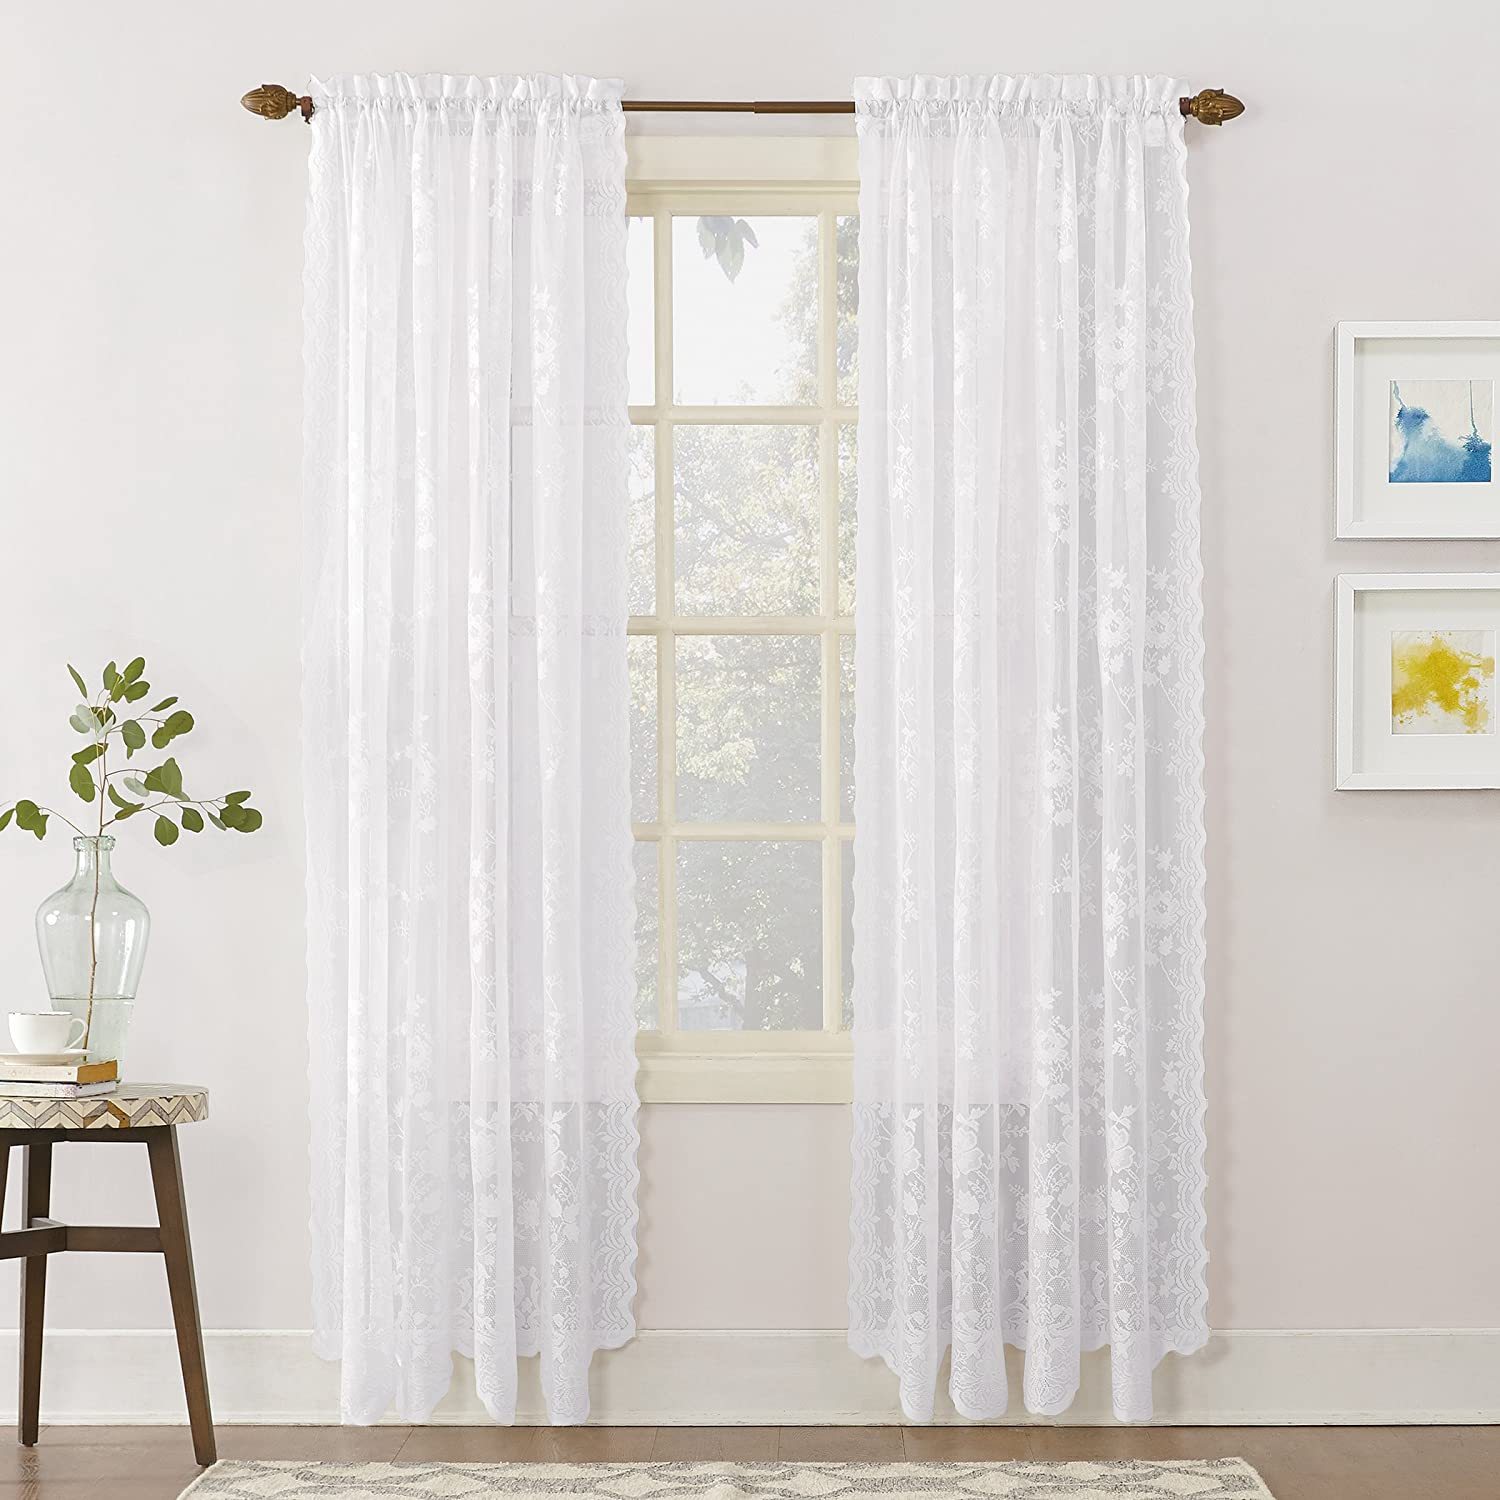 """No. 918 Alison Floral Lace Sheer Rod Pocket Curtain Panel, 58"""" x 84"""", White"""